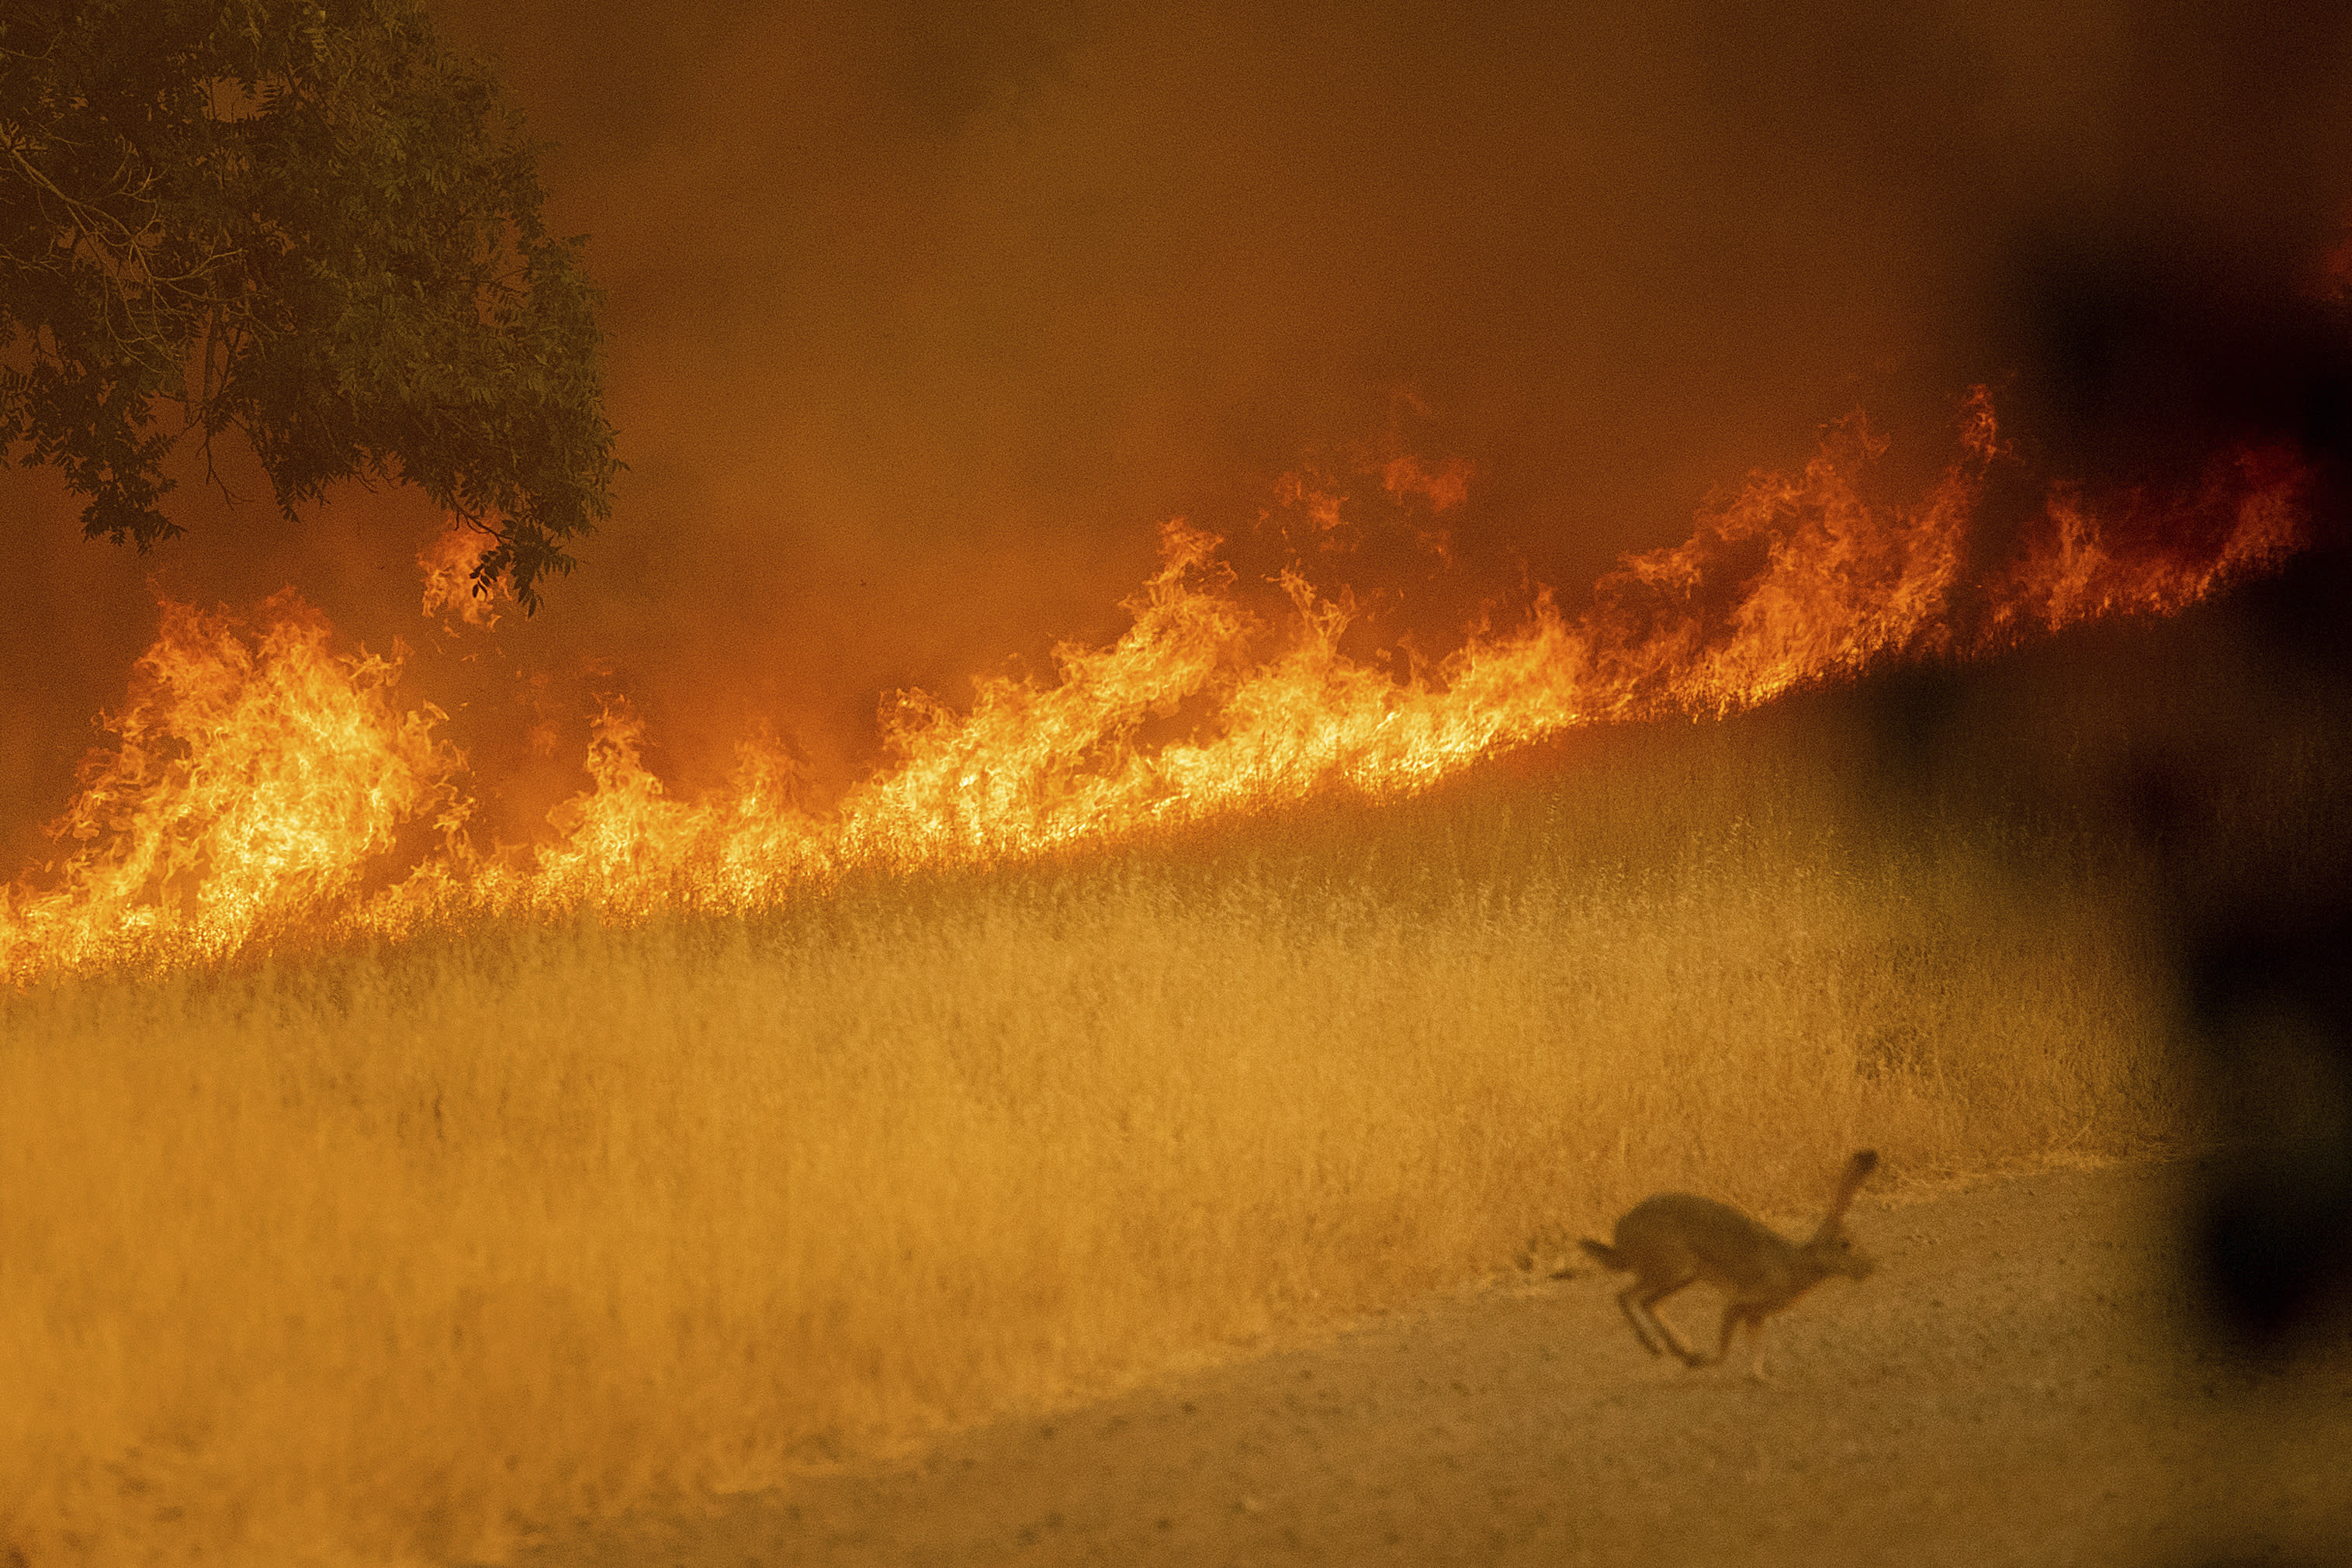 <p>A rabbit flees as a wildfire burns in Guinda, Calif., July 1, 2018.(Photo: Noah Berger/AP) </p>